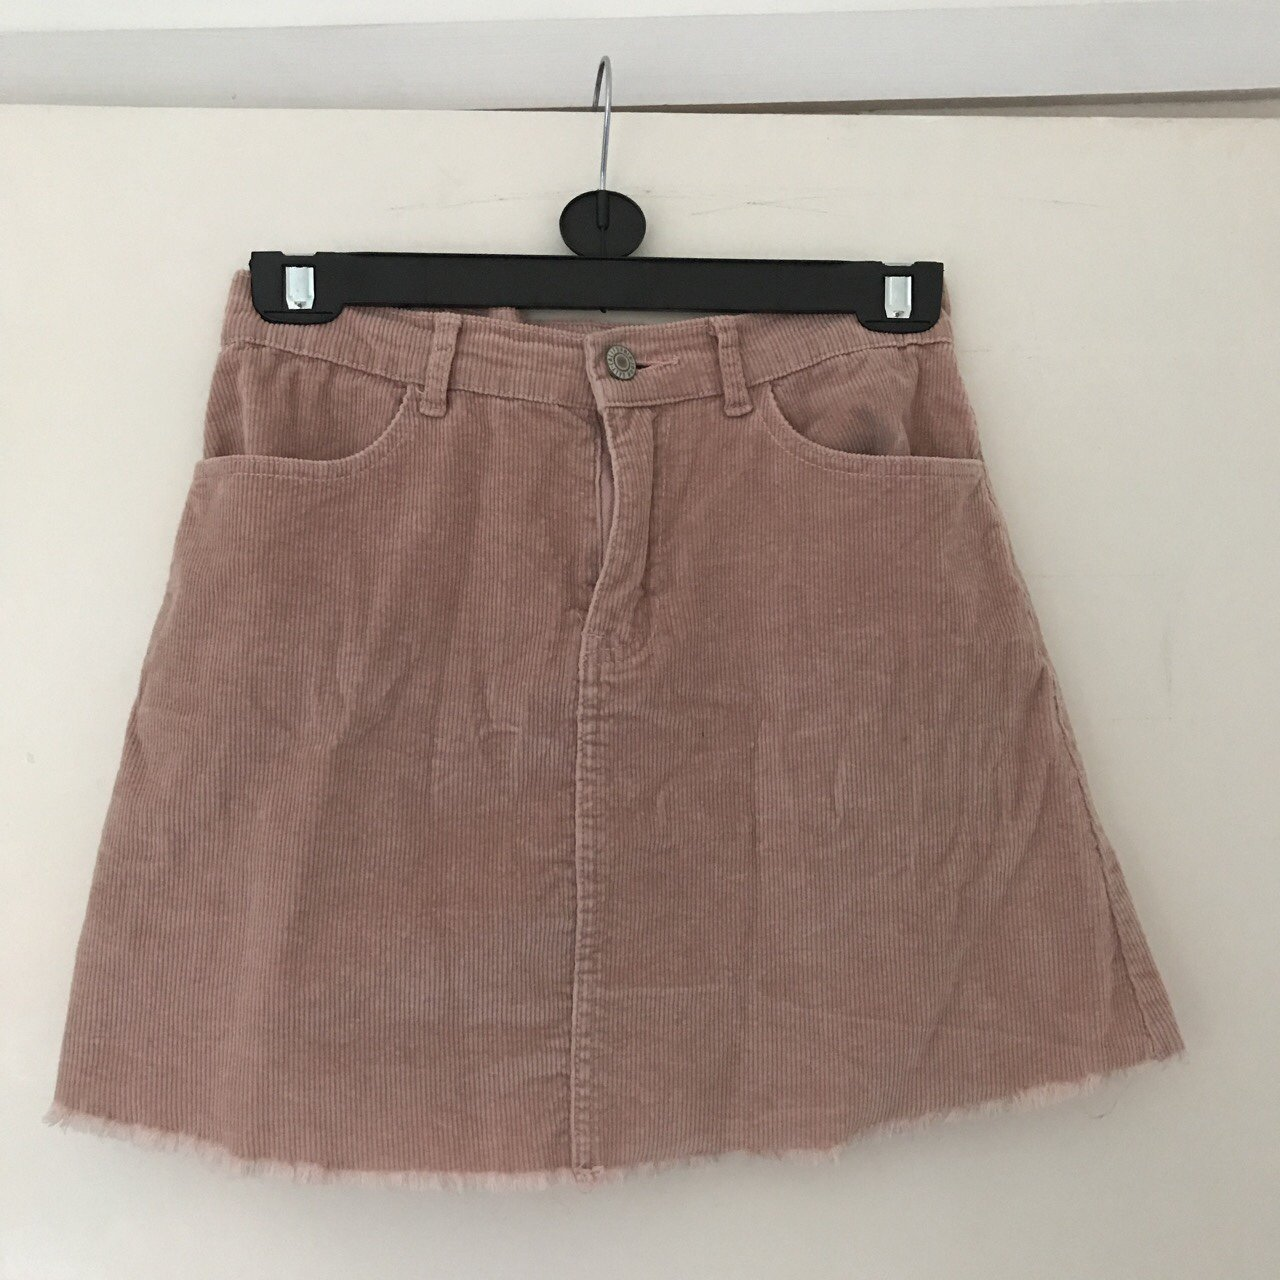 09d617a8c4 @iizzybrown. last year. Broadstairs, United Kingdom. Brandy Melville blush pink  corduroy skirt. Size 6-8